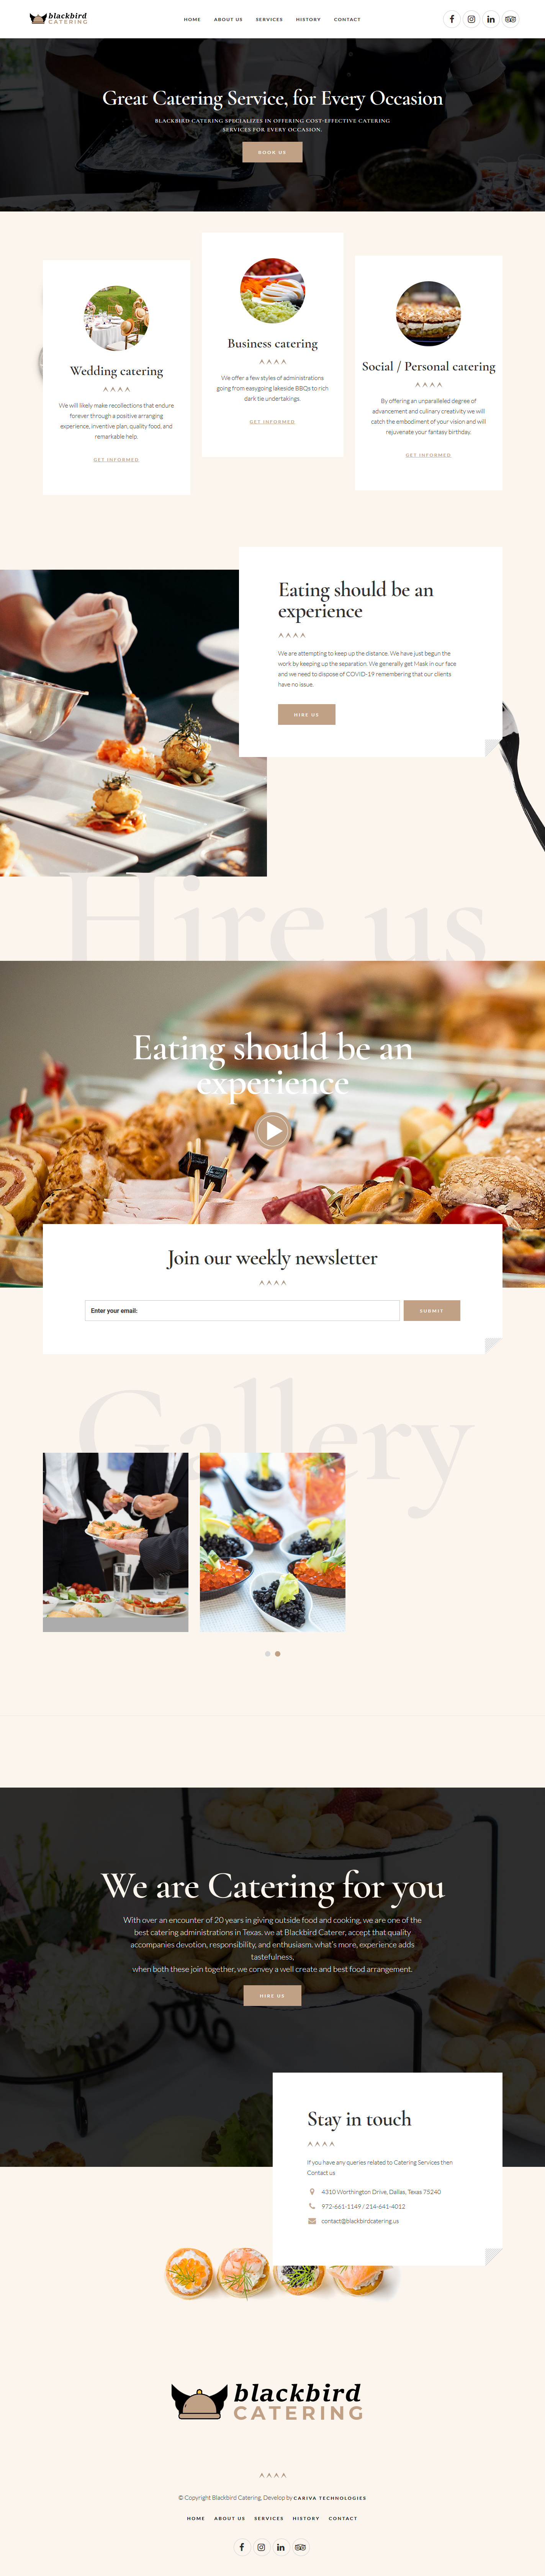 catering service website